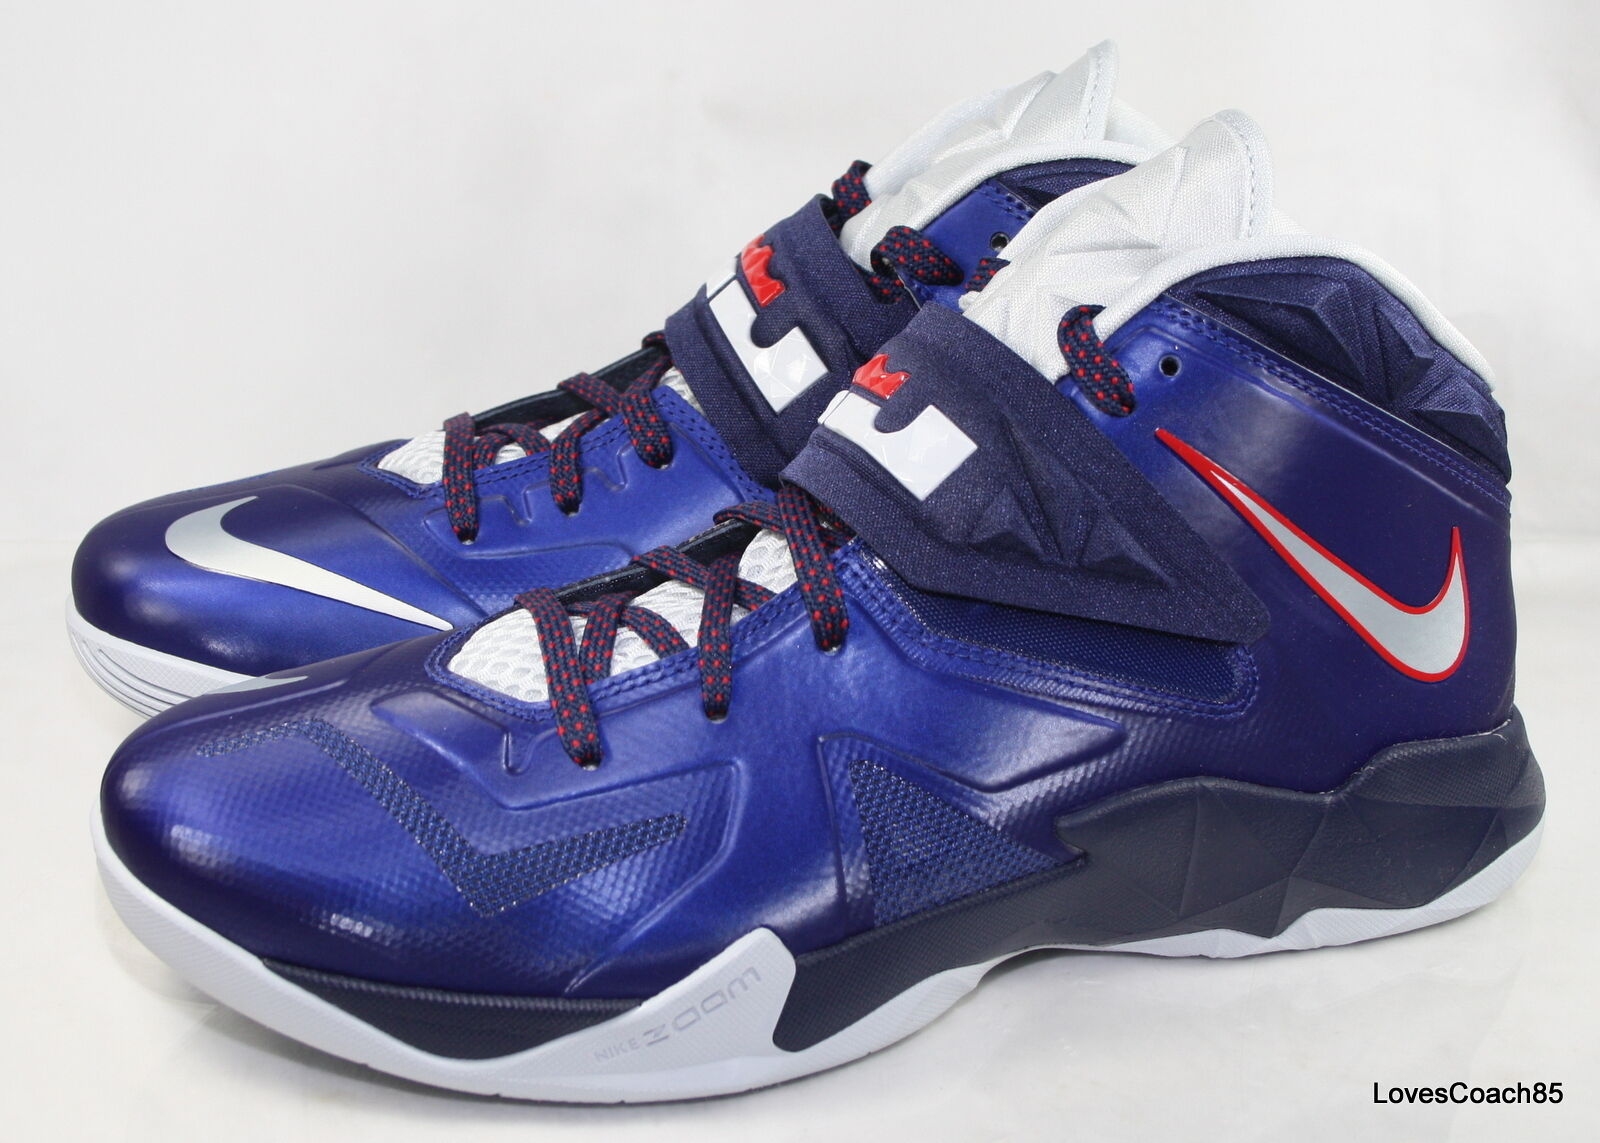 05795ab4b94 ... Nike Zoom Soldier VII Size 11 Deep Royal Blue Platinum-Navy-Red 599264  ...